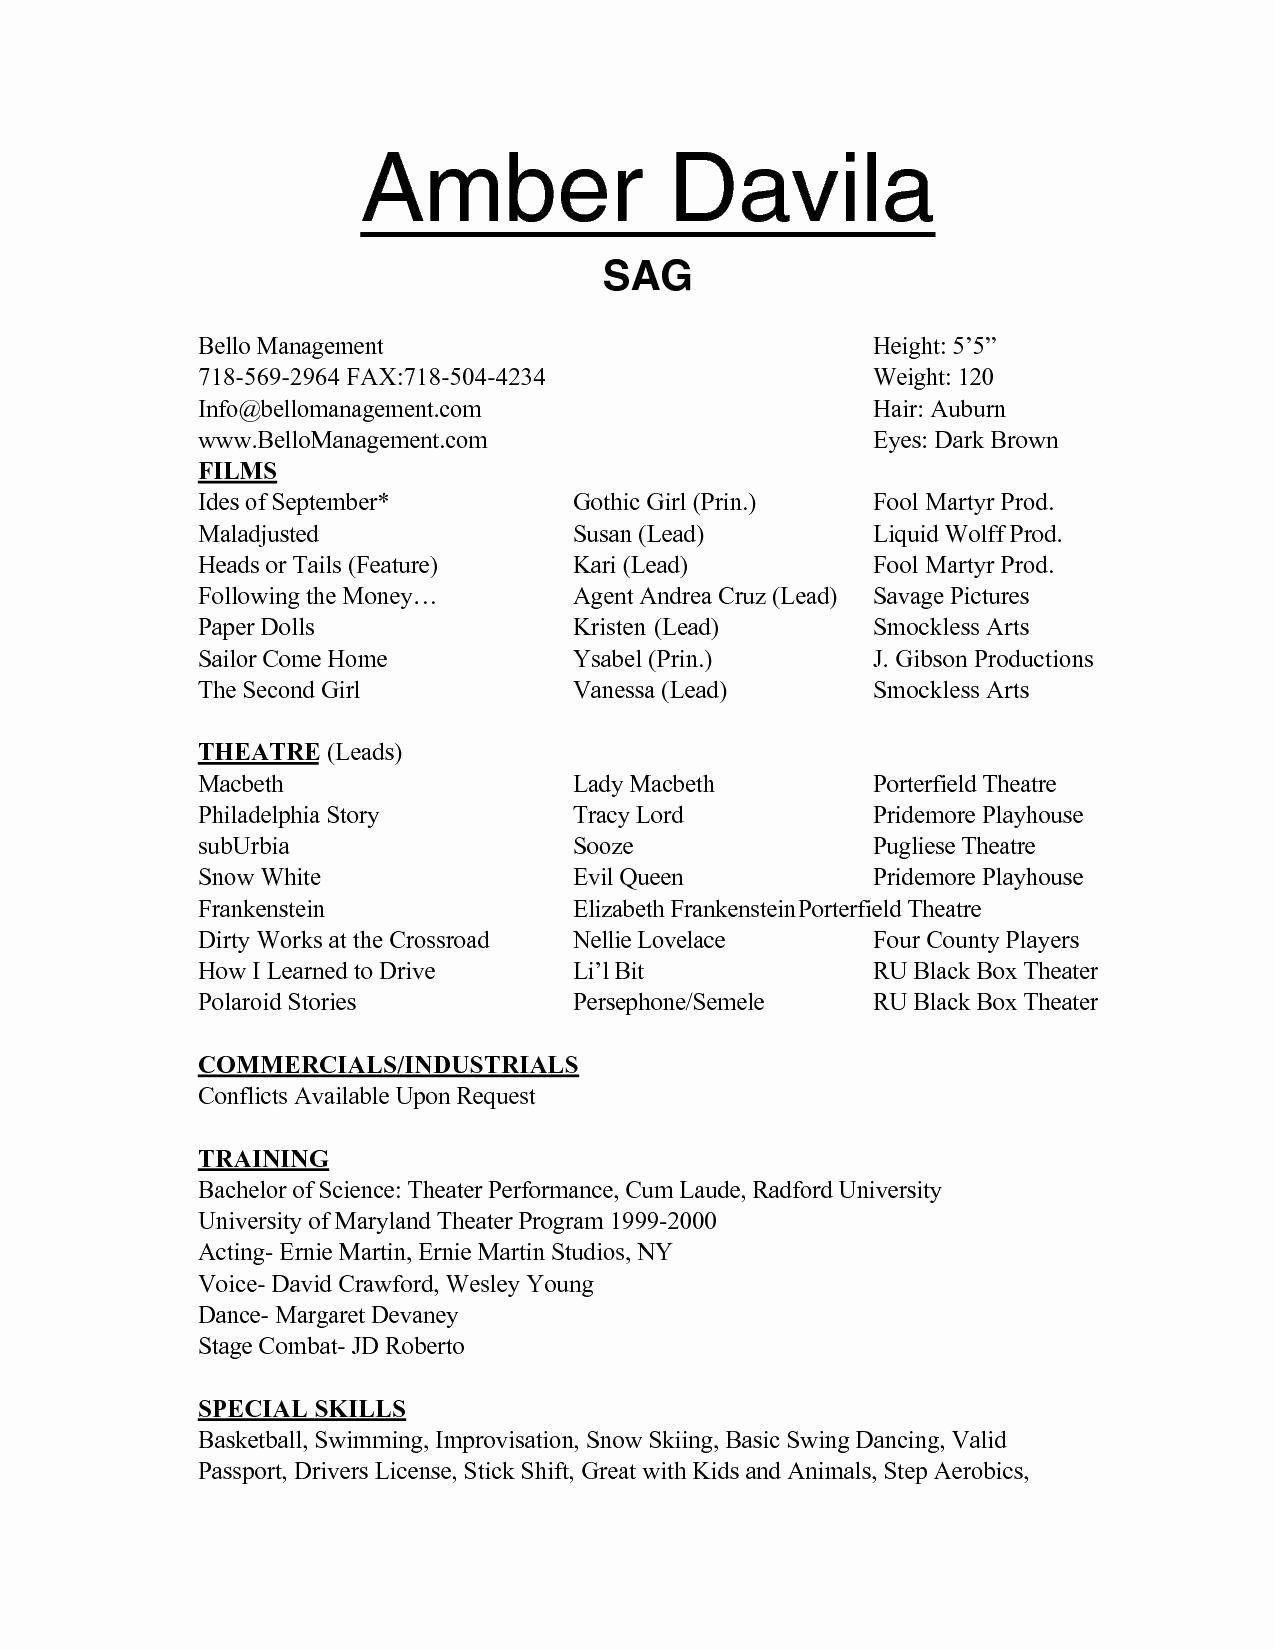 30 Acting Resume with No Experience Acting resume